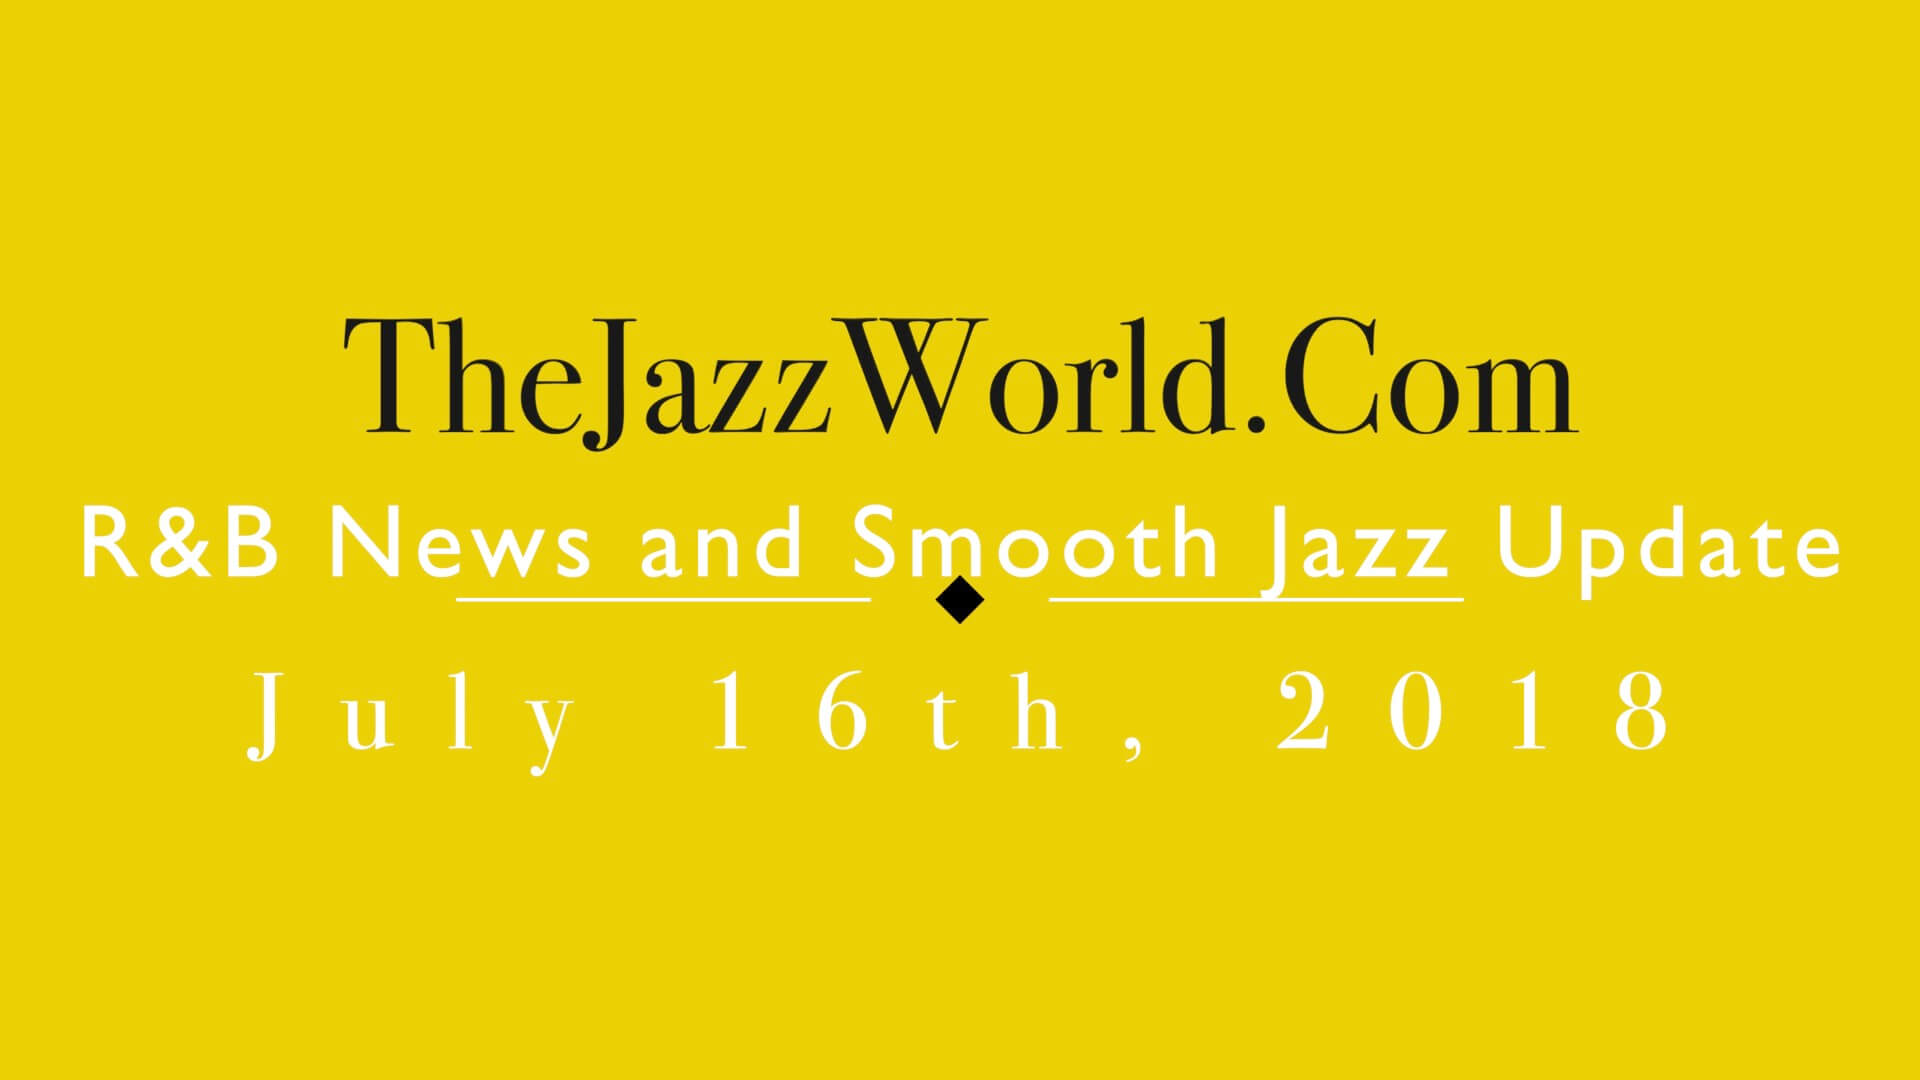 Latest R&B News and Smooth Jazz Update July 16th